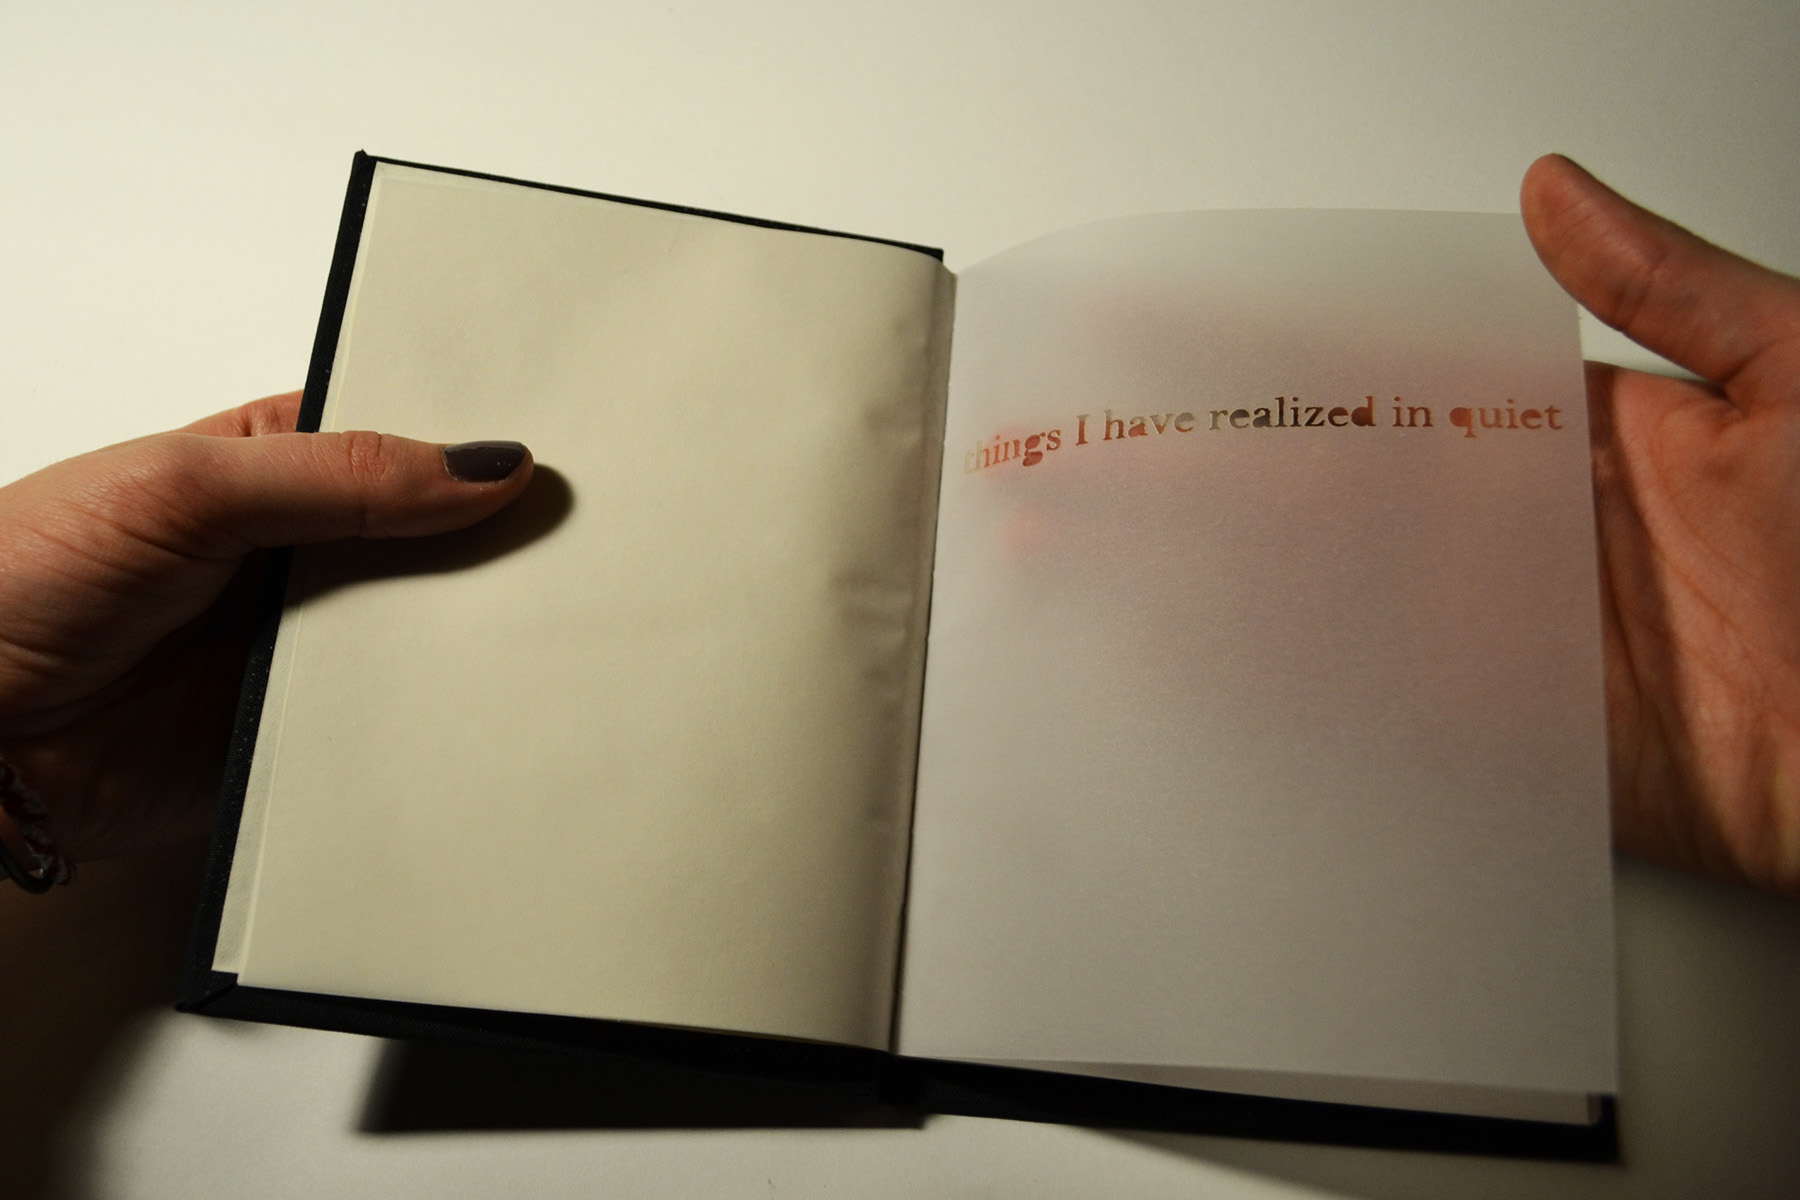 things I have realized in quiet, 2012